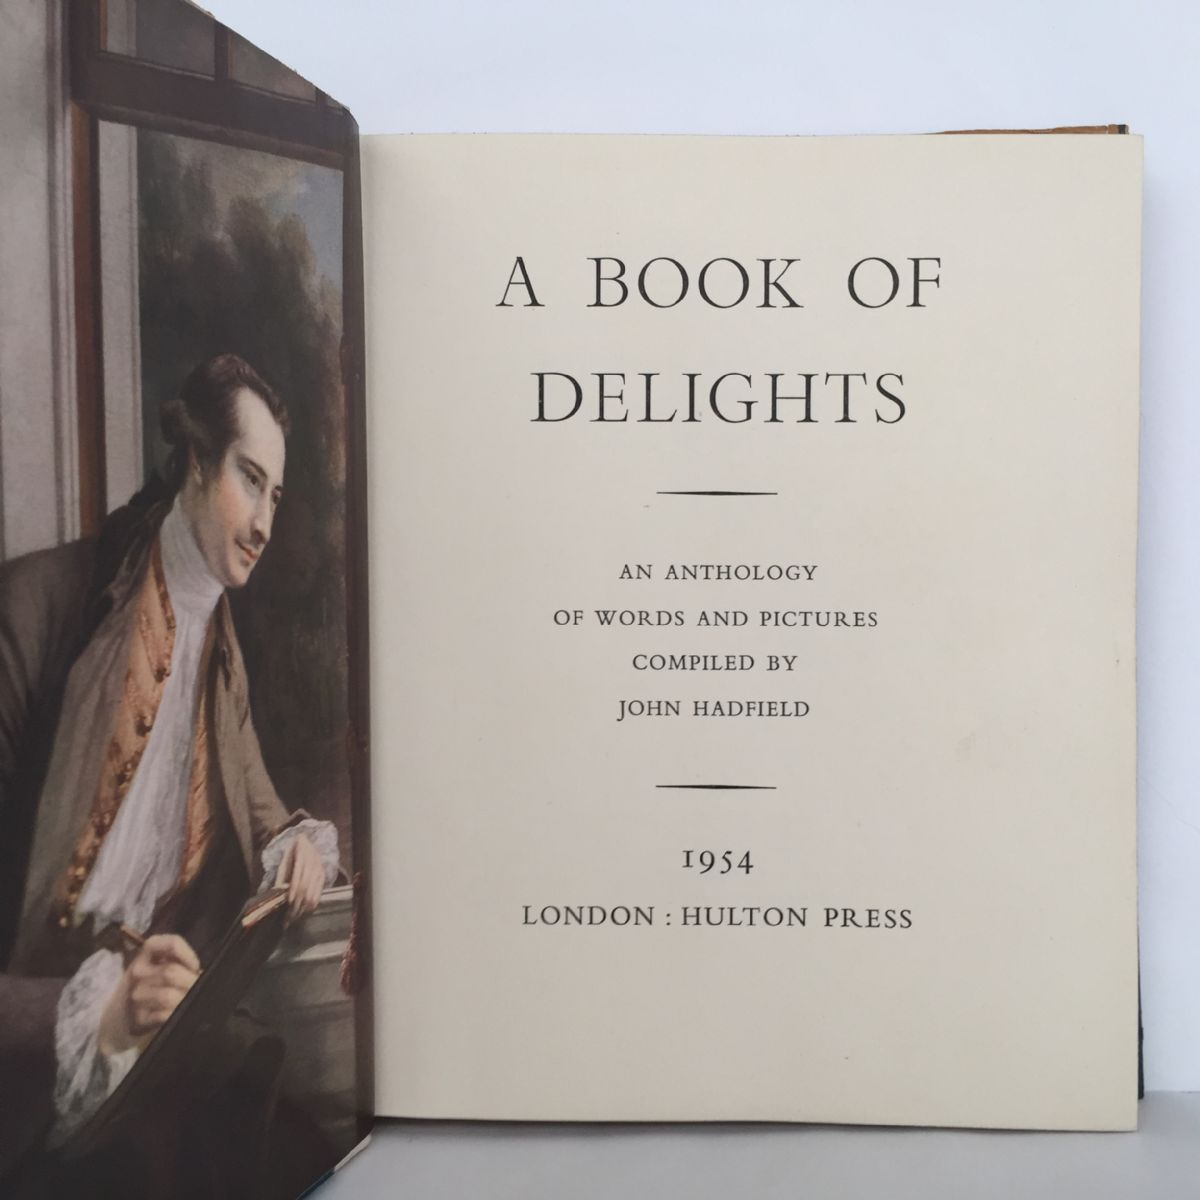 A Book of Delights